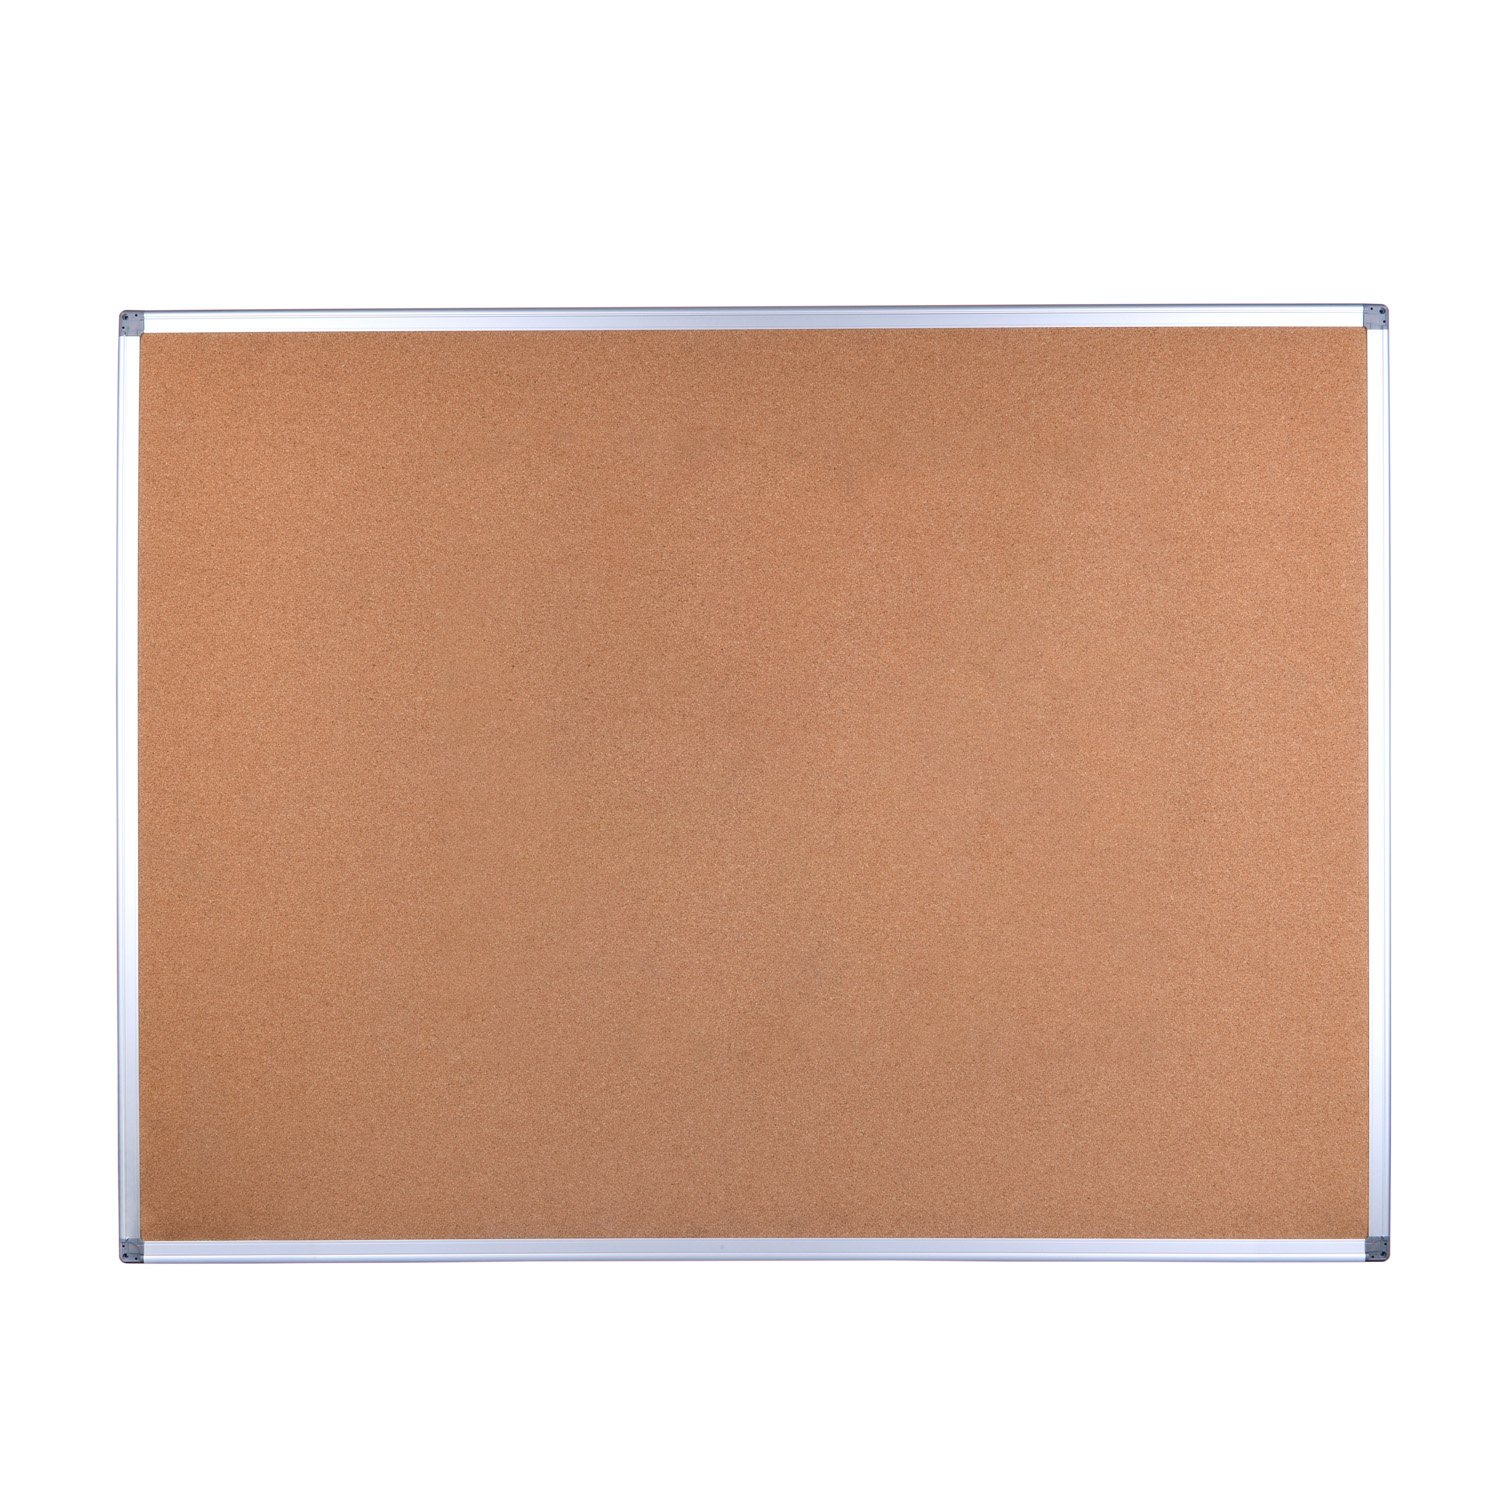 EFIRNITURE Cork Board Bulletin Board,48 x 36 Inch Aluminum Frame Wall Mounted, Perfect for Home Office School